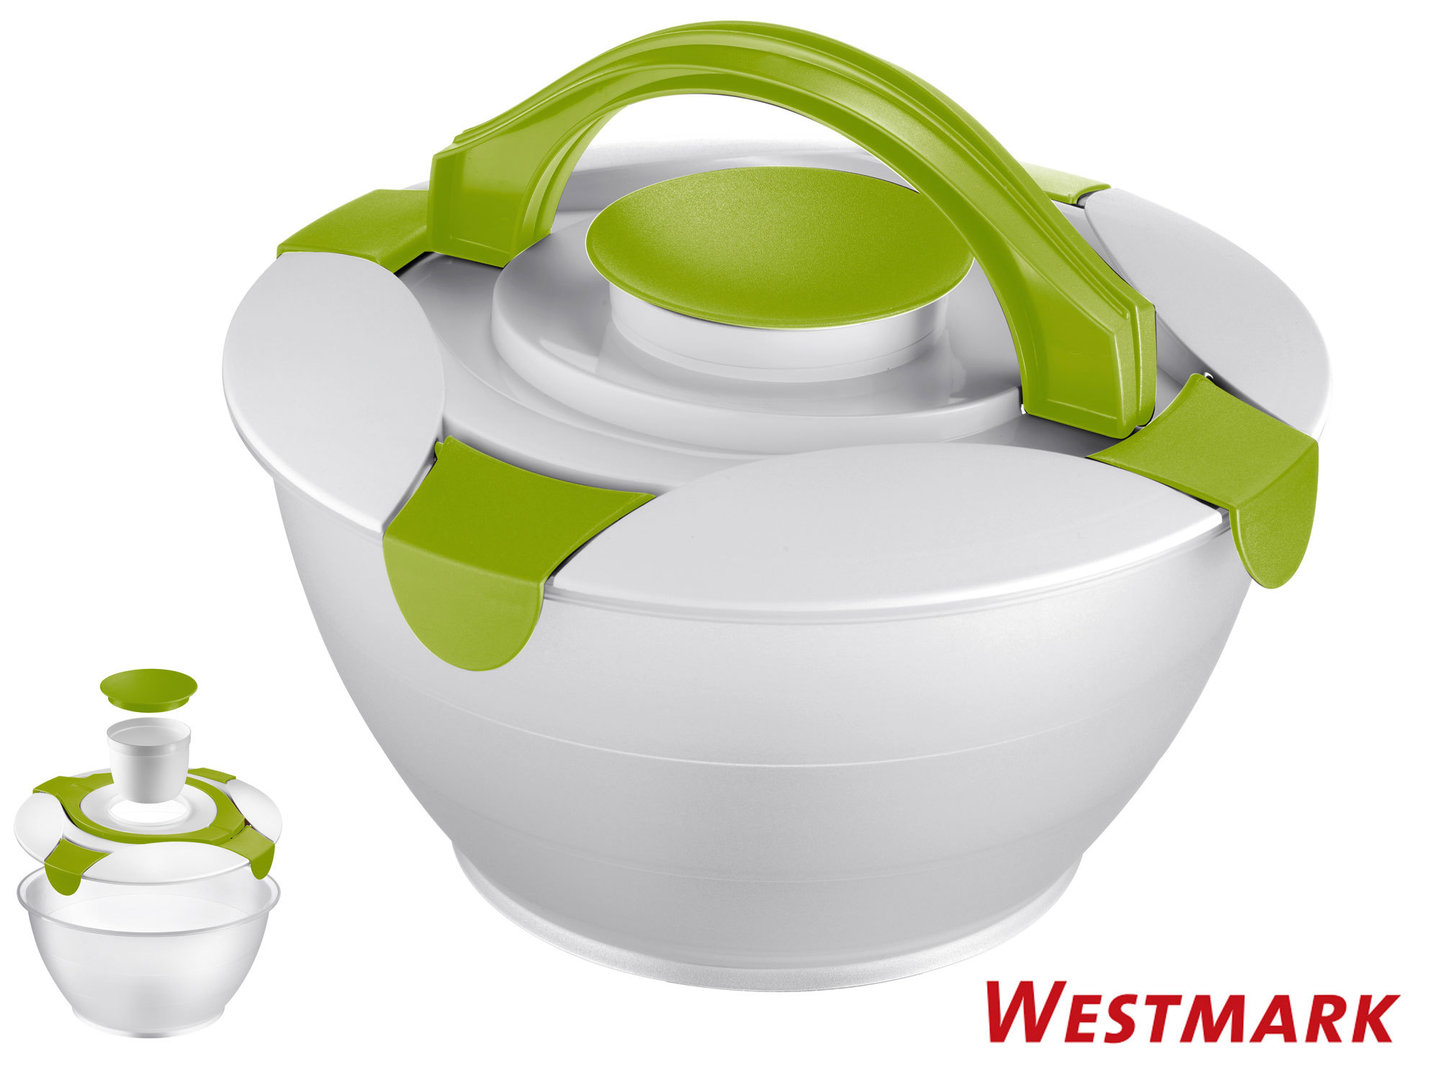 WESTMARK salad butler 6,5 l take-along salad bowl with lid APPLE GREEN